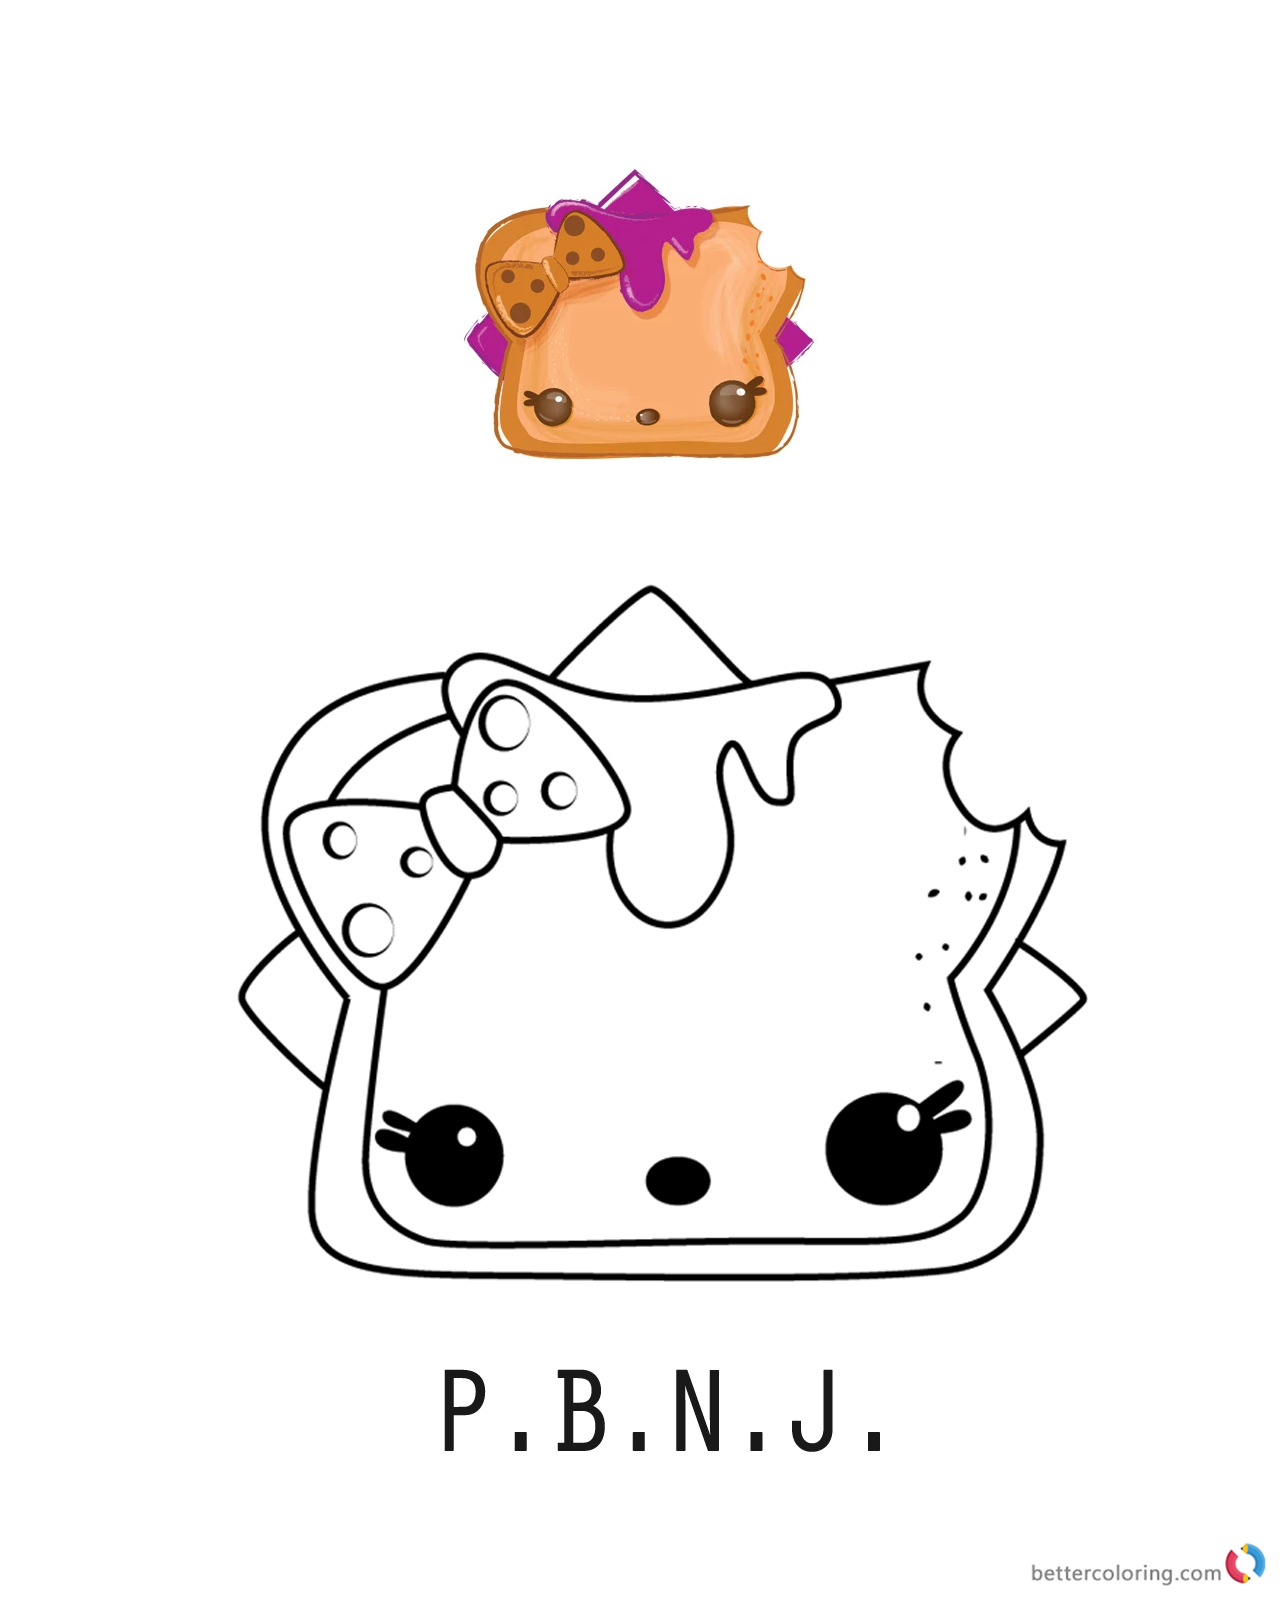 P.B.N.J. from Num Noms coloring pages printable